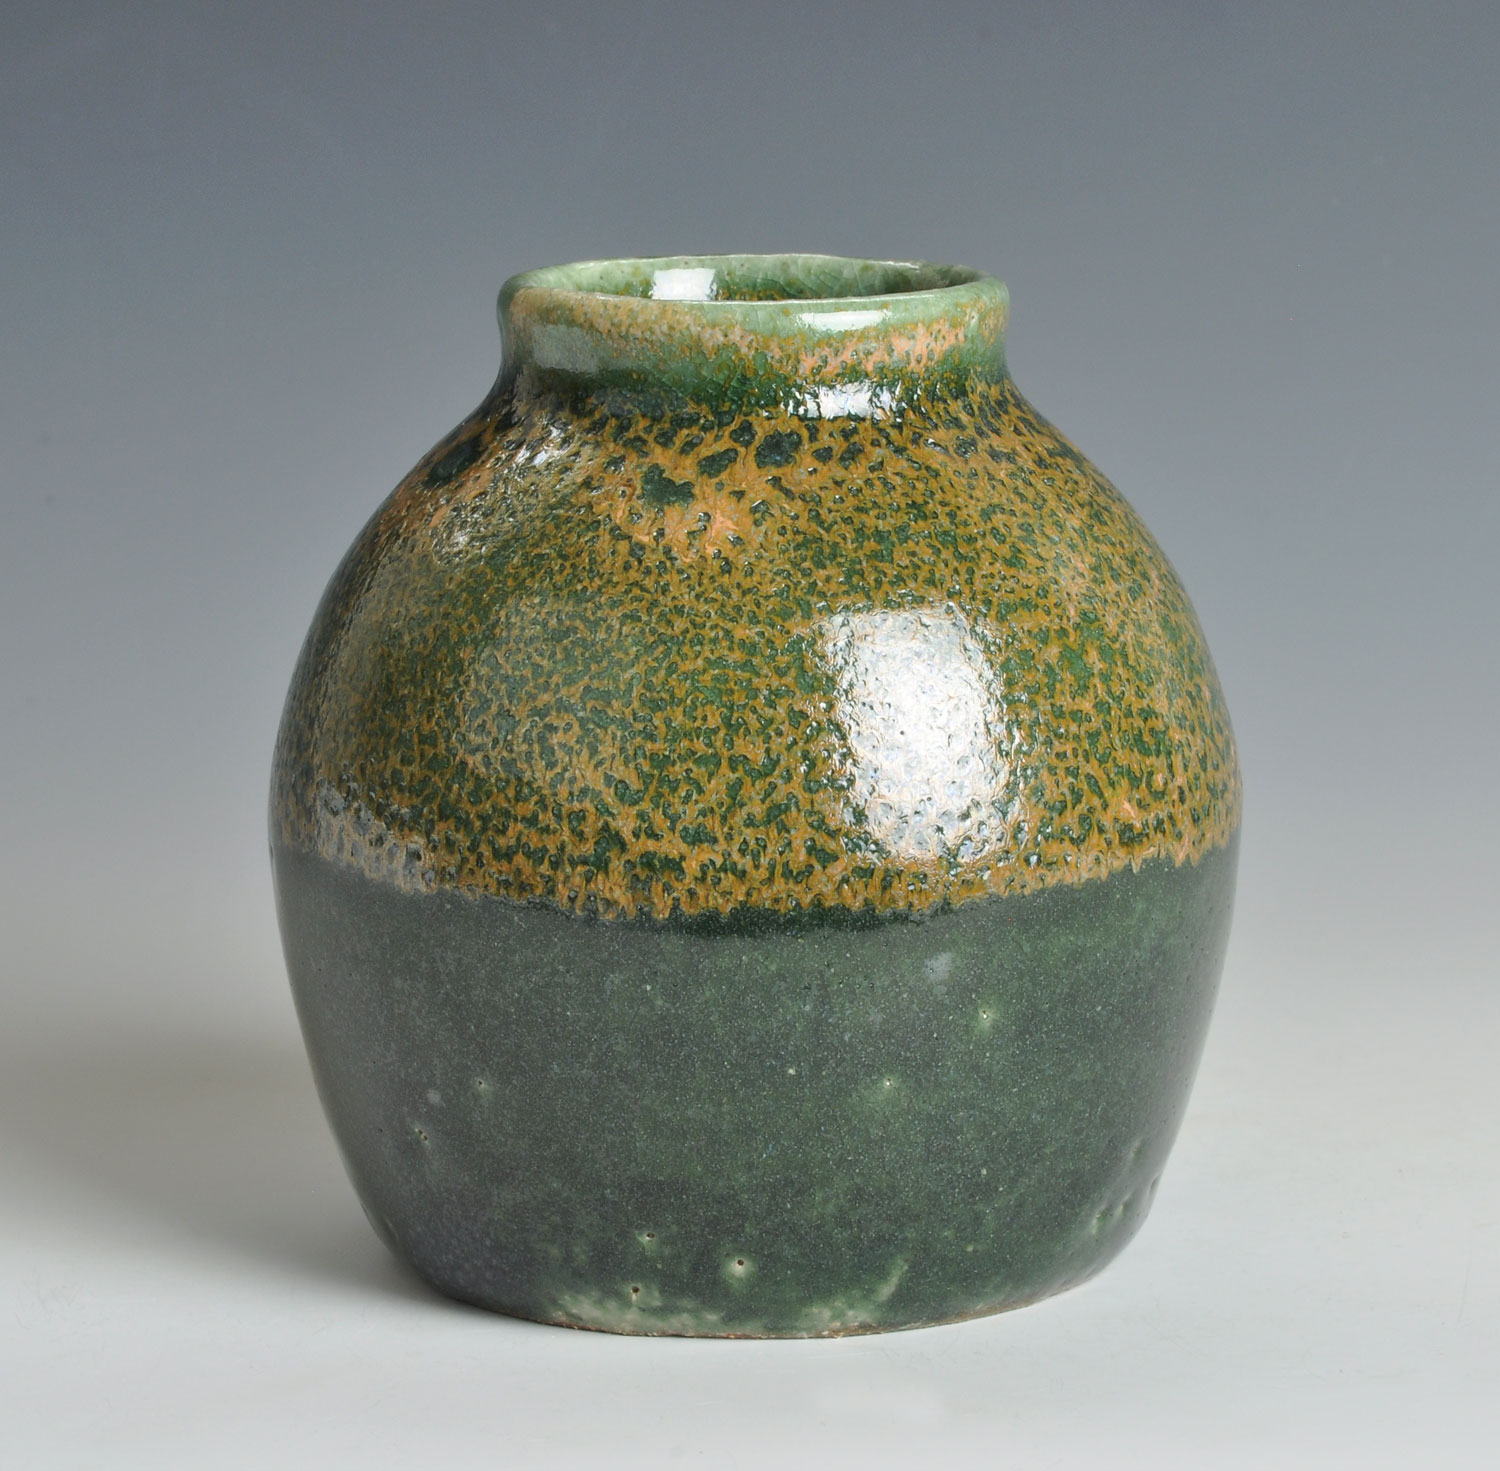 Earth work some new pots and glazes vase electric fired 4 ins tall reviewsmspy